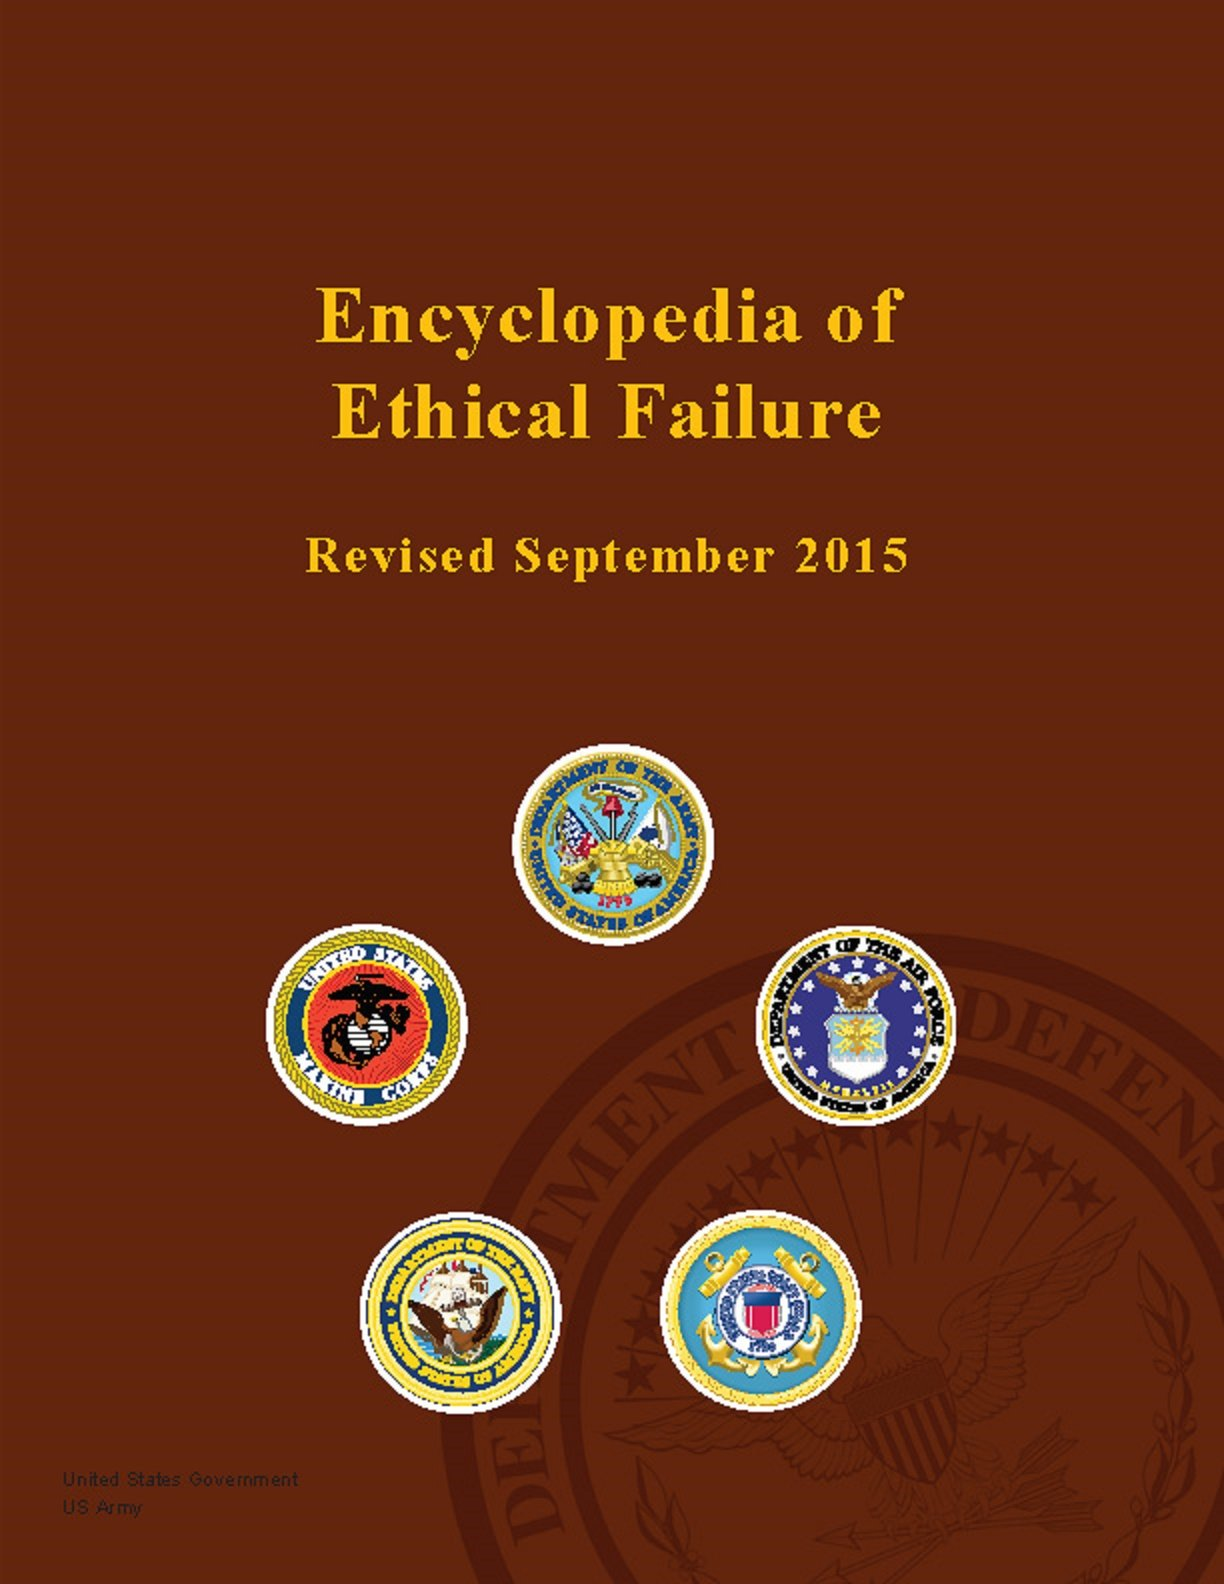 Image OfEncyclopedia Of Ethical Failure - Revised September 2015